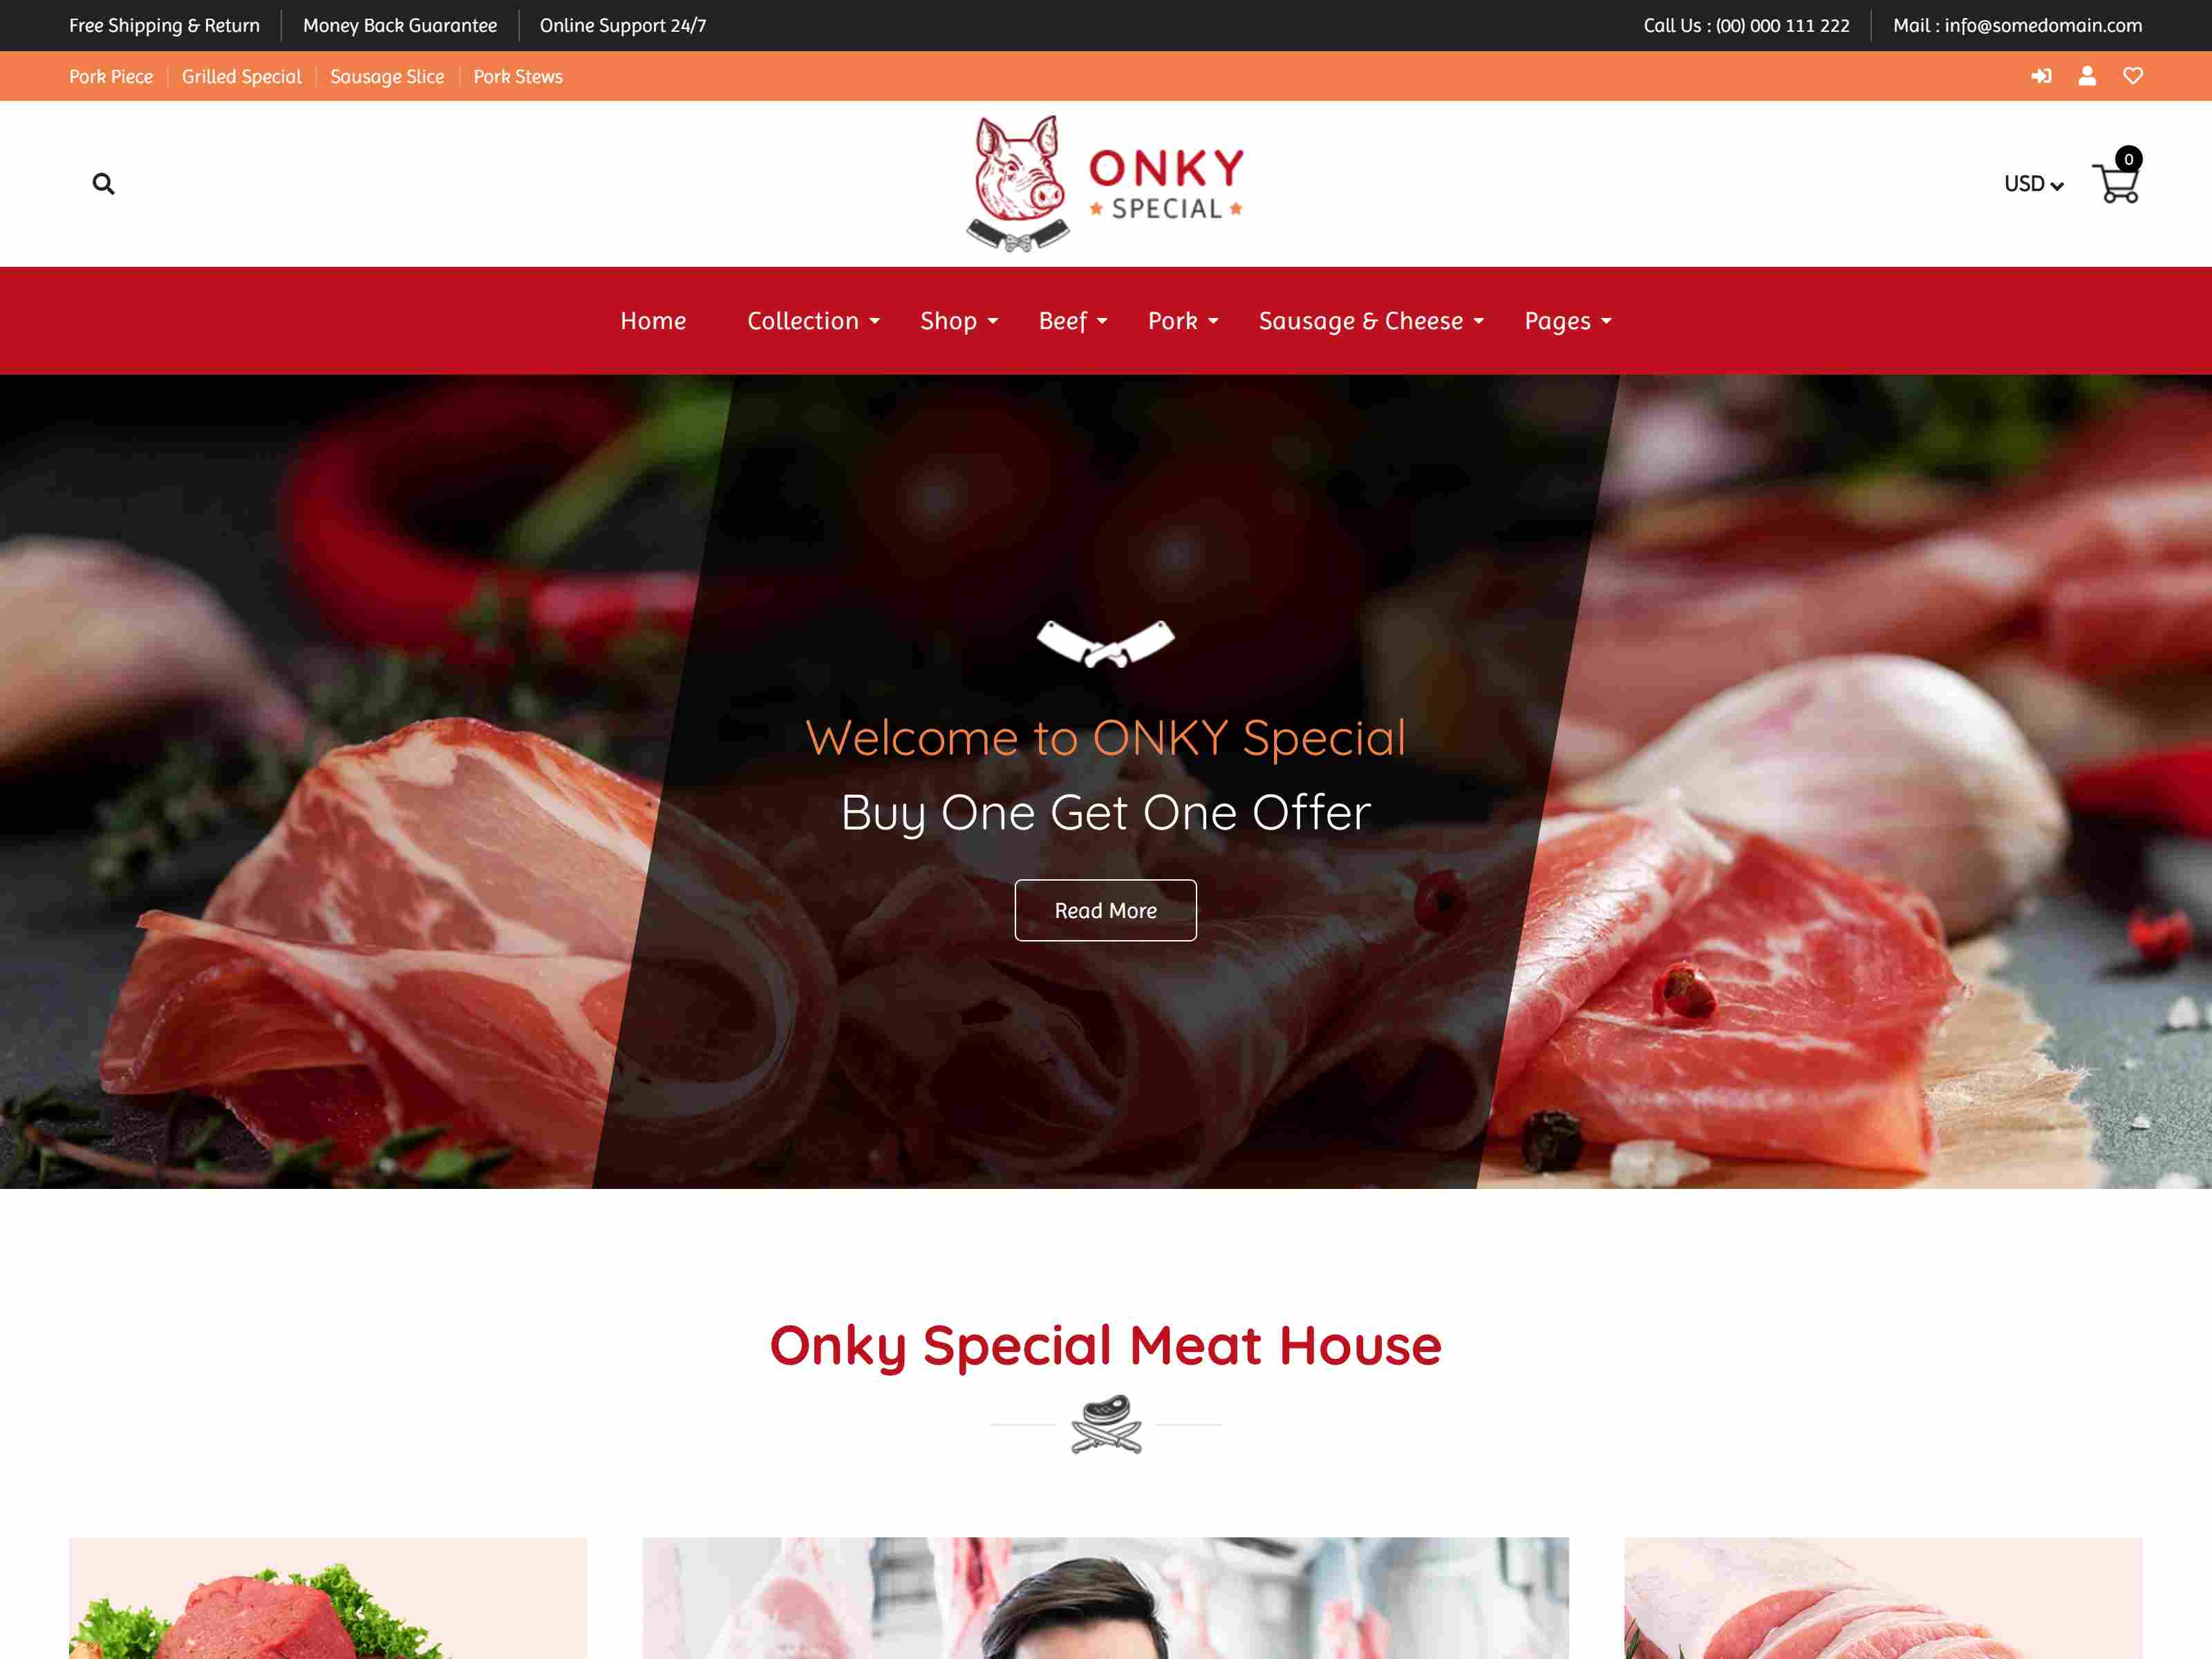 Onky | Butcher, Food and Meat Shop Shopify Theme